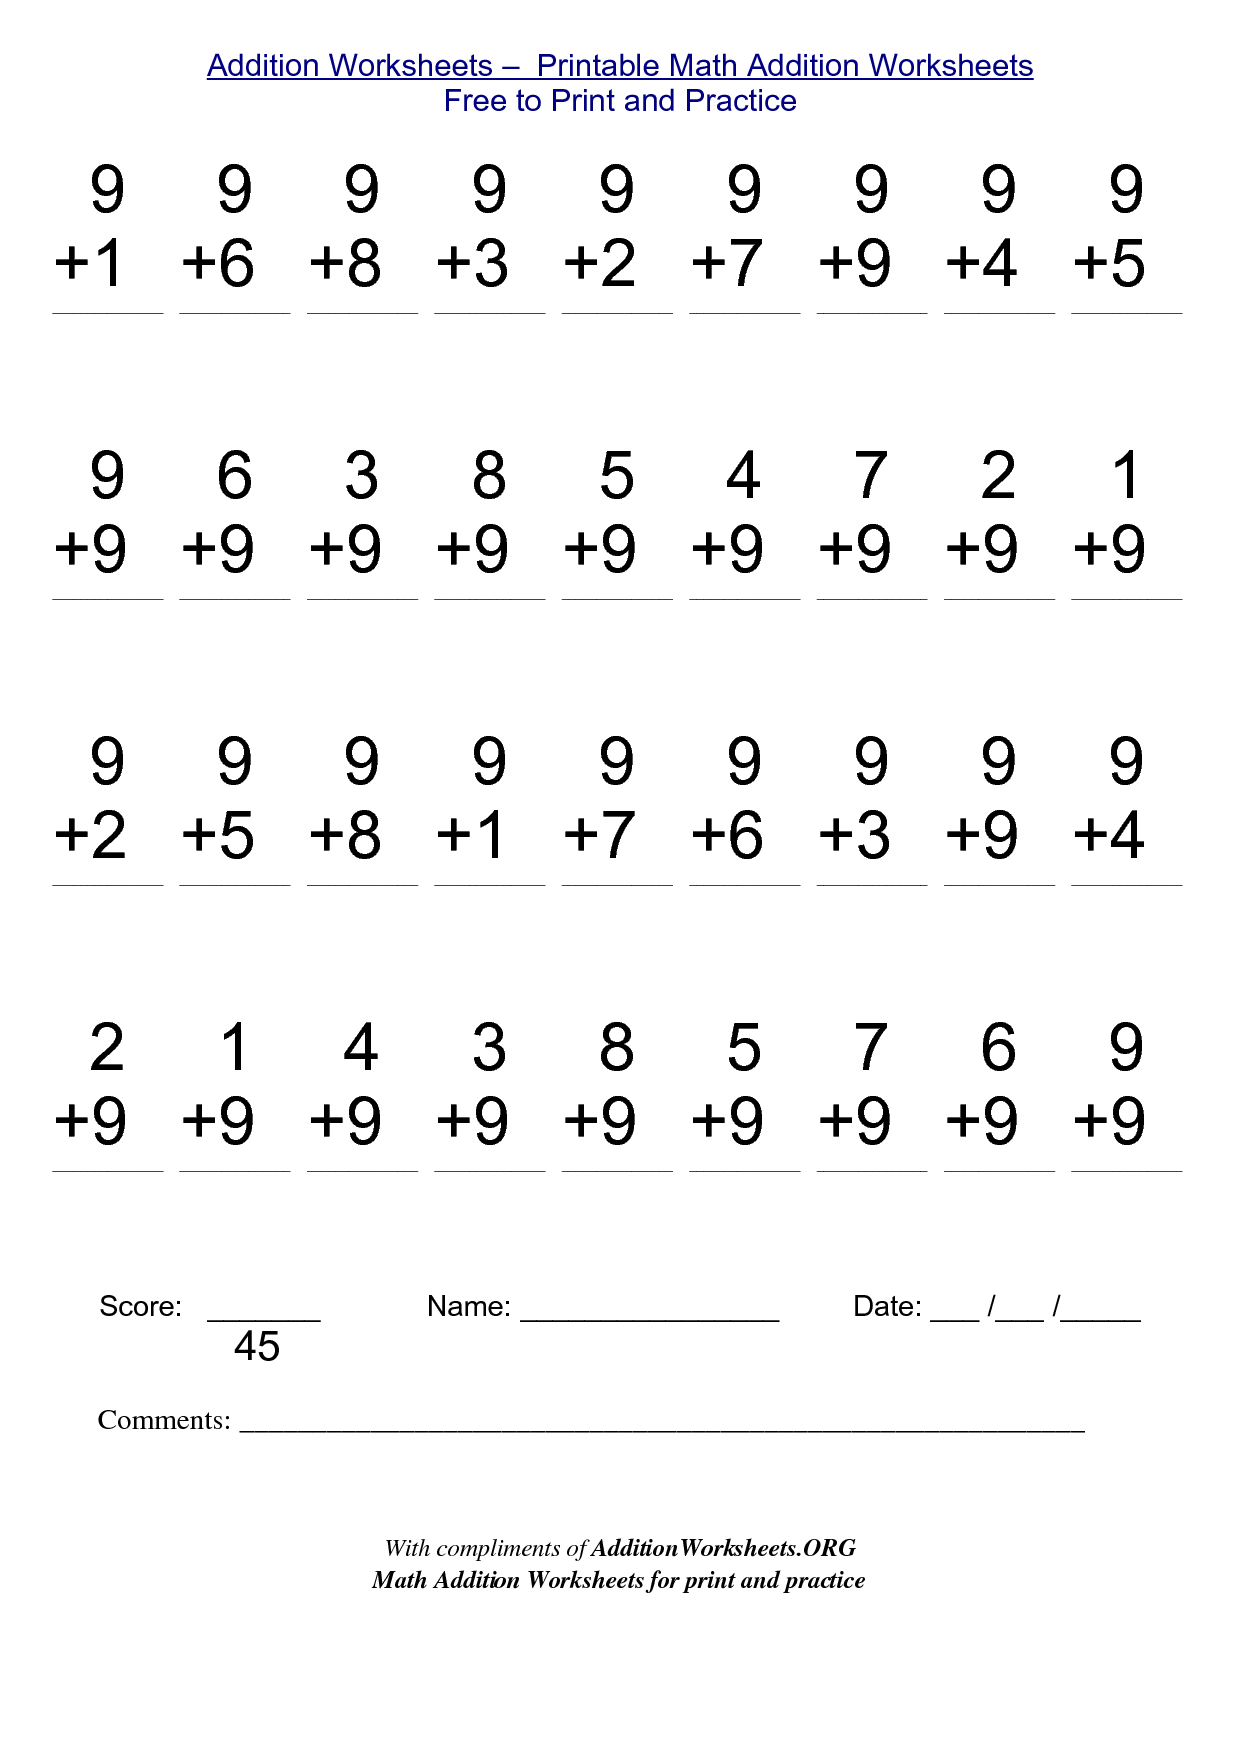 Worksheets Math Worksheets To Print For 2nd Graders math worksheets for free to print alot com me pinterest addition printable grade stuff print